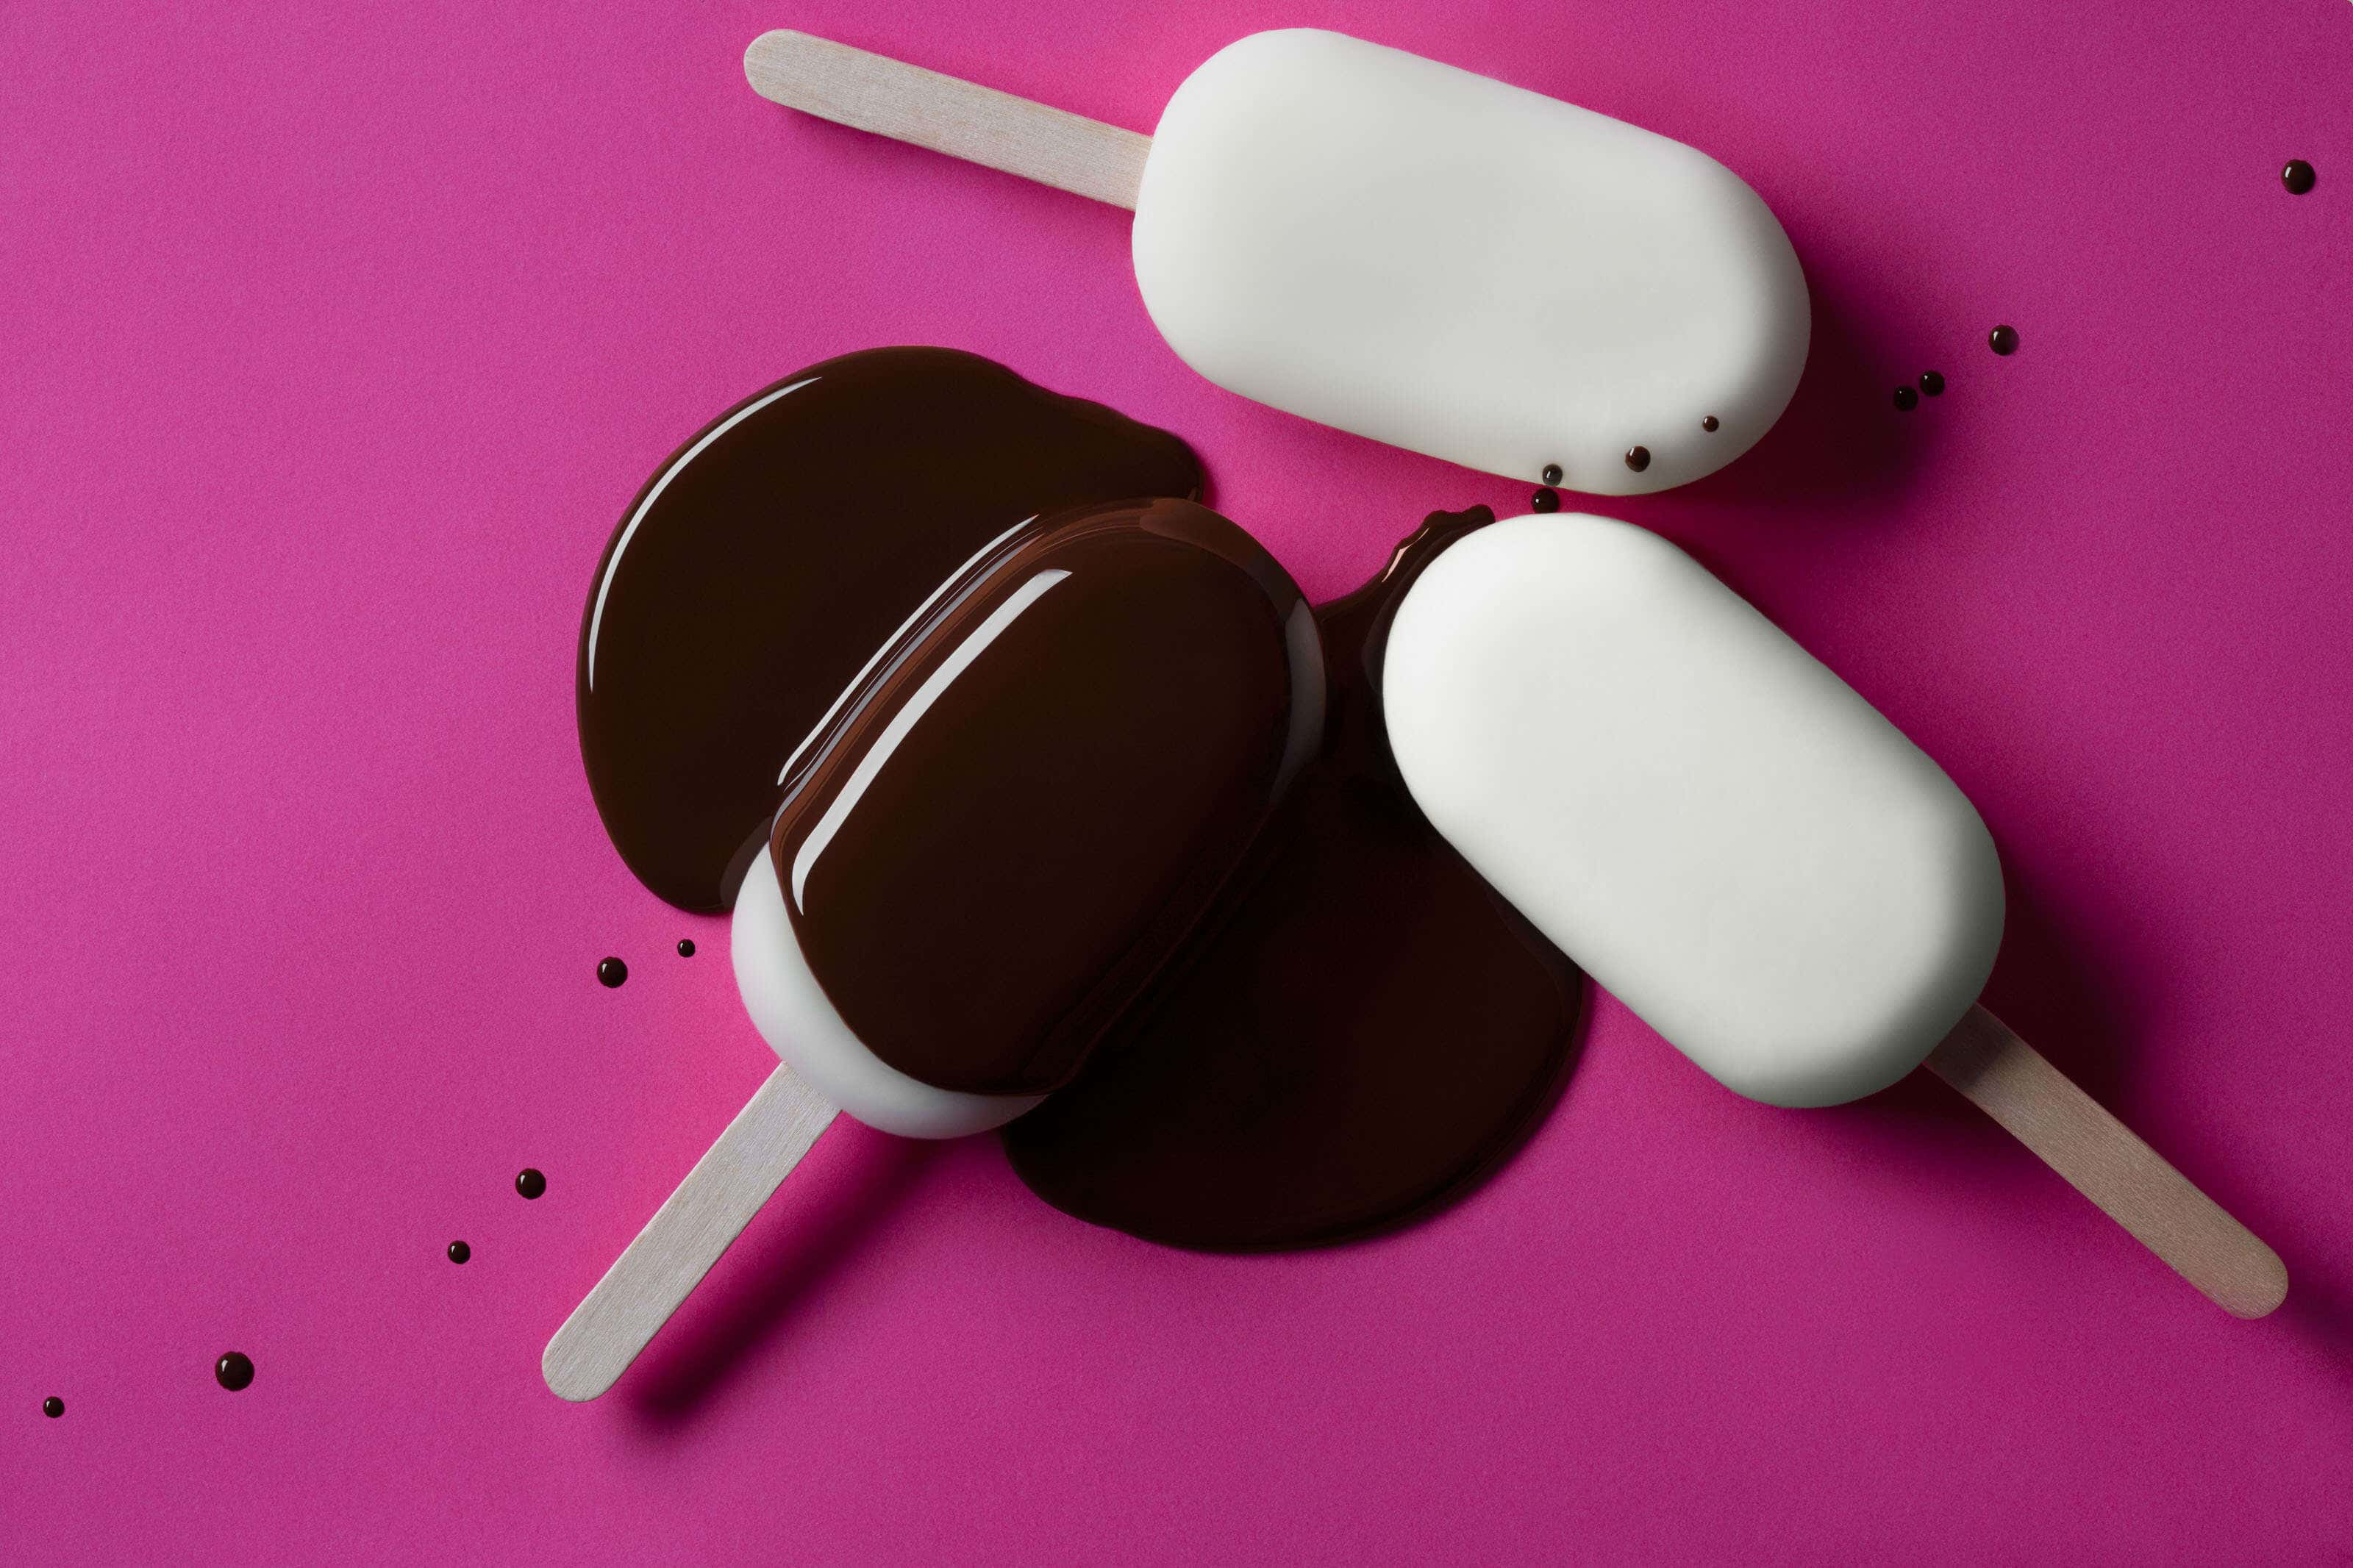 magnum ice cream lollies on pink background with chocolate poured over